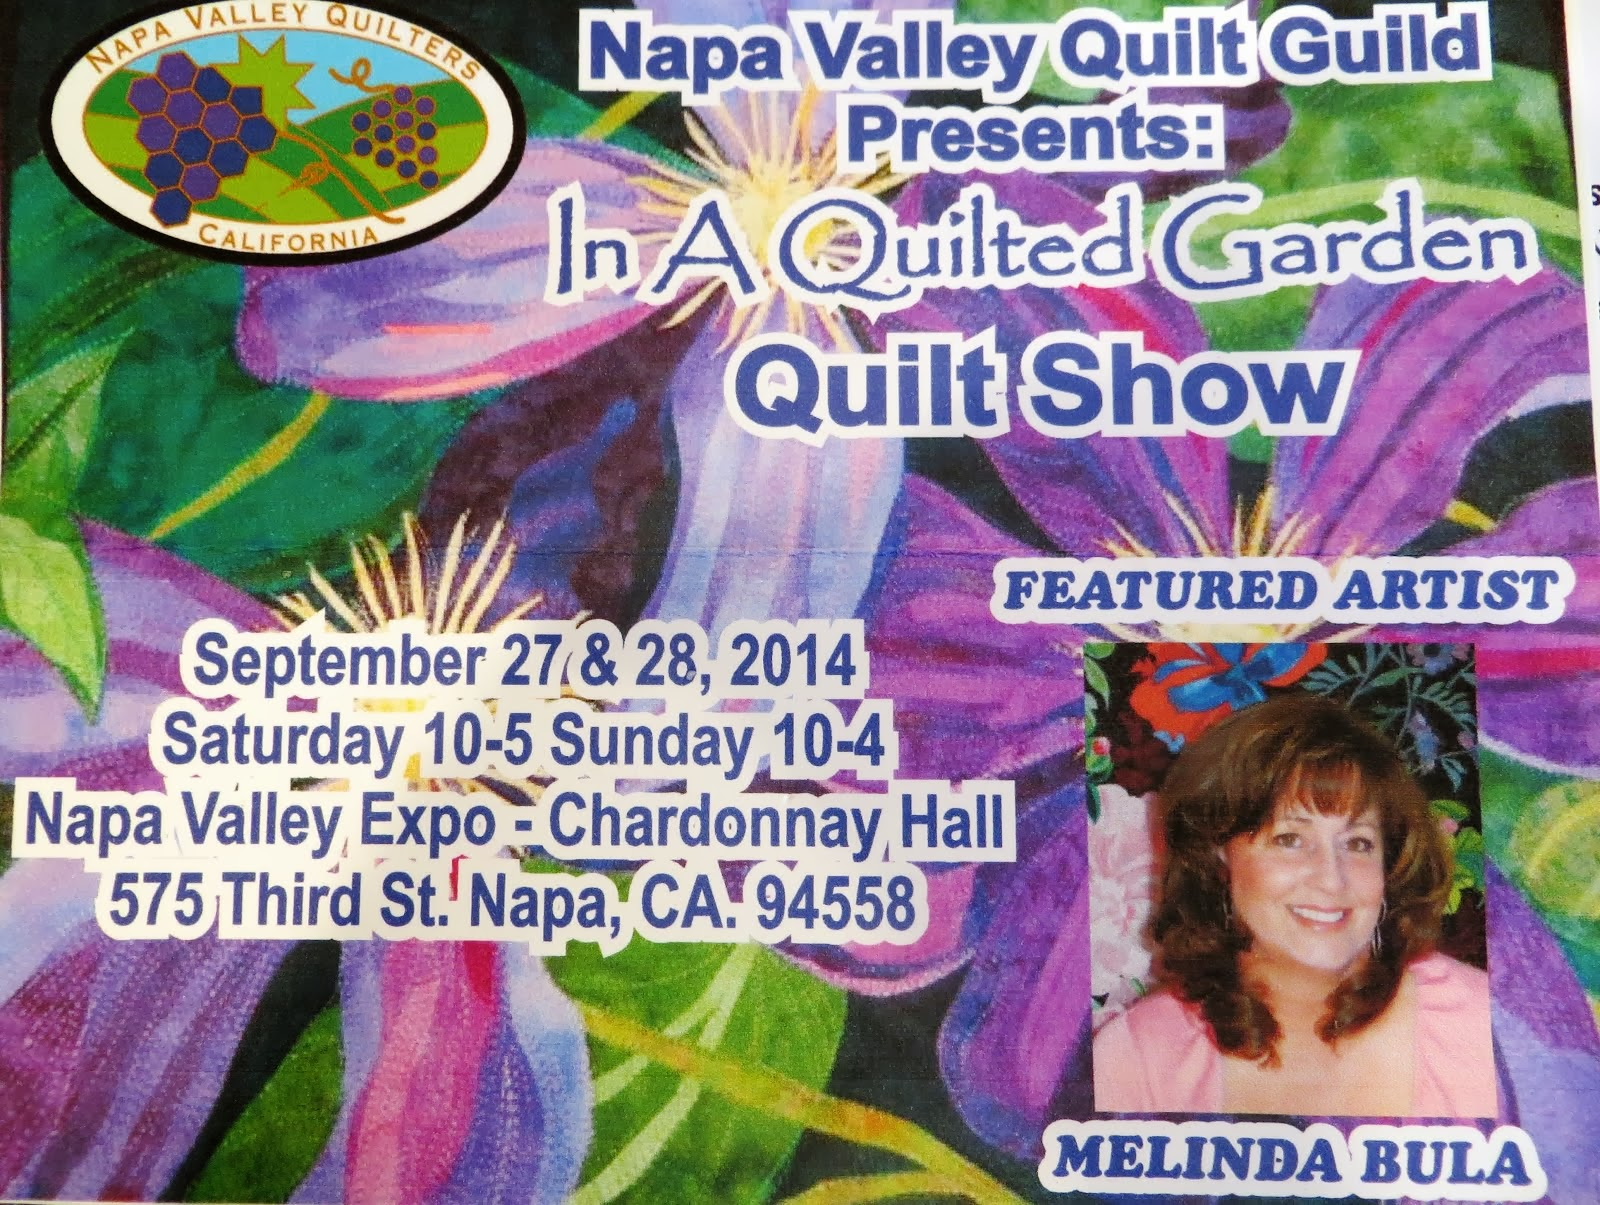 Napa Valley Quilt Guild